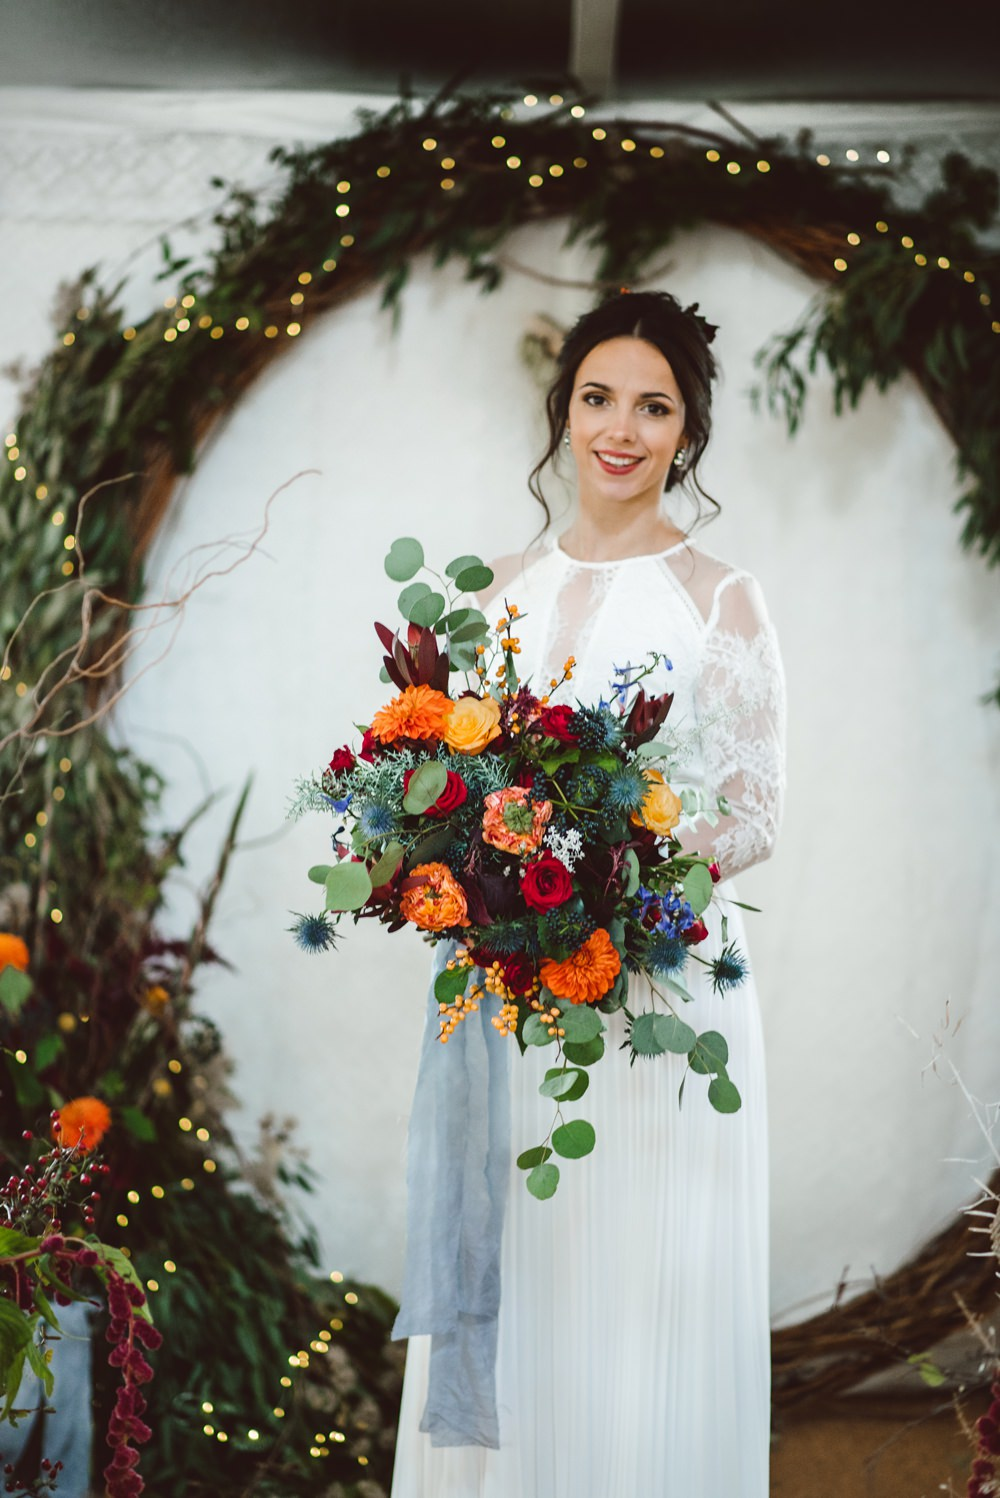 Moongate Flower Arch Backdrop Ceremony Conifer Eucalyptus Greenery Foliage Bride Bridal Dress Gown Lace Sleeves Illusion Rustic Christmas Wedding Ideas Dhw Photography